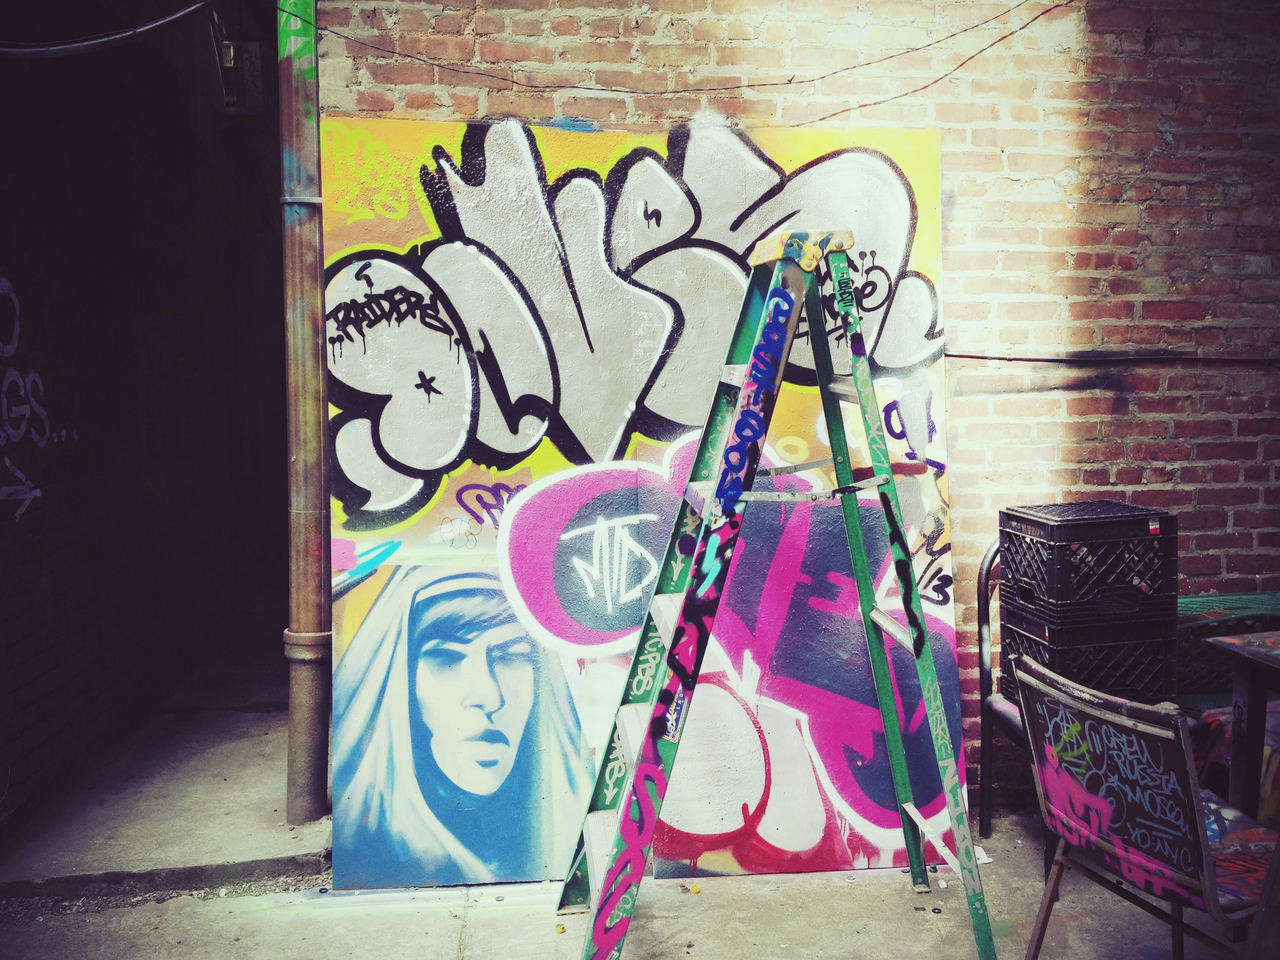 Mural @ Tuff City 3 #peppersearching #pepper #photos #graffiti #spraypaint #nyc